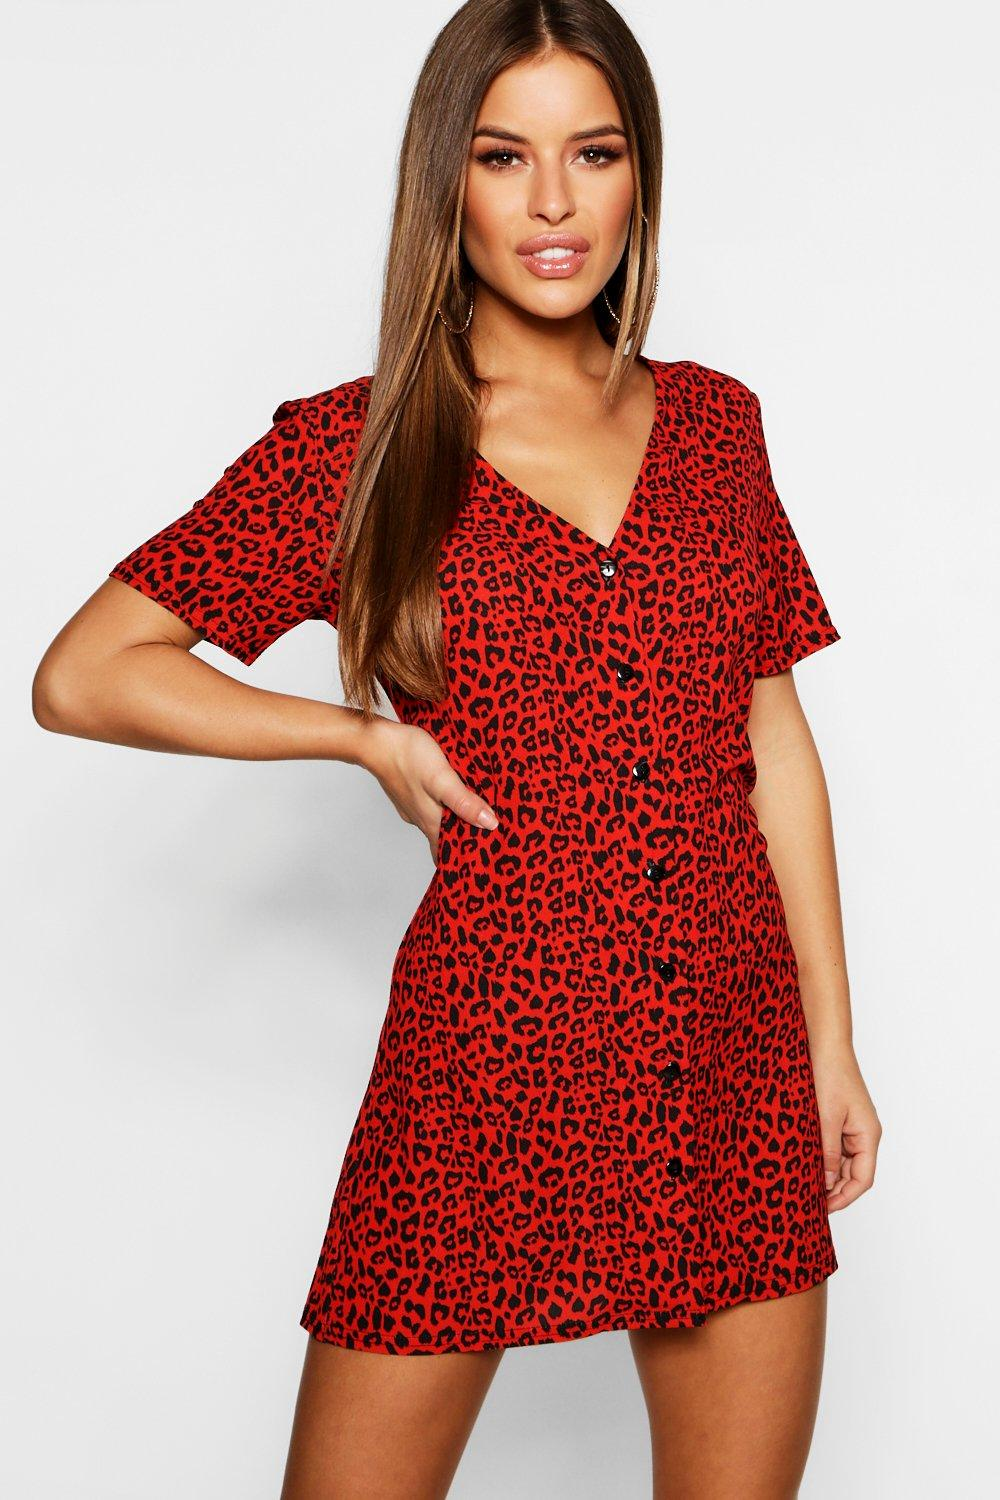 boohoo Womens Petite Leopard Print Button Shift Dress - Red - 12, Red